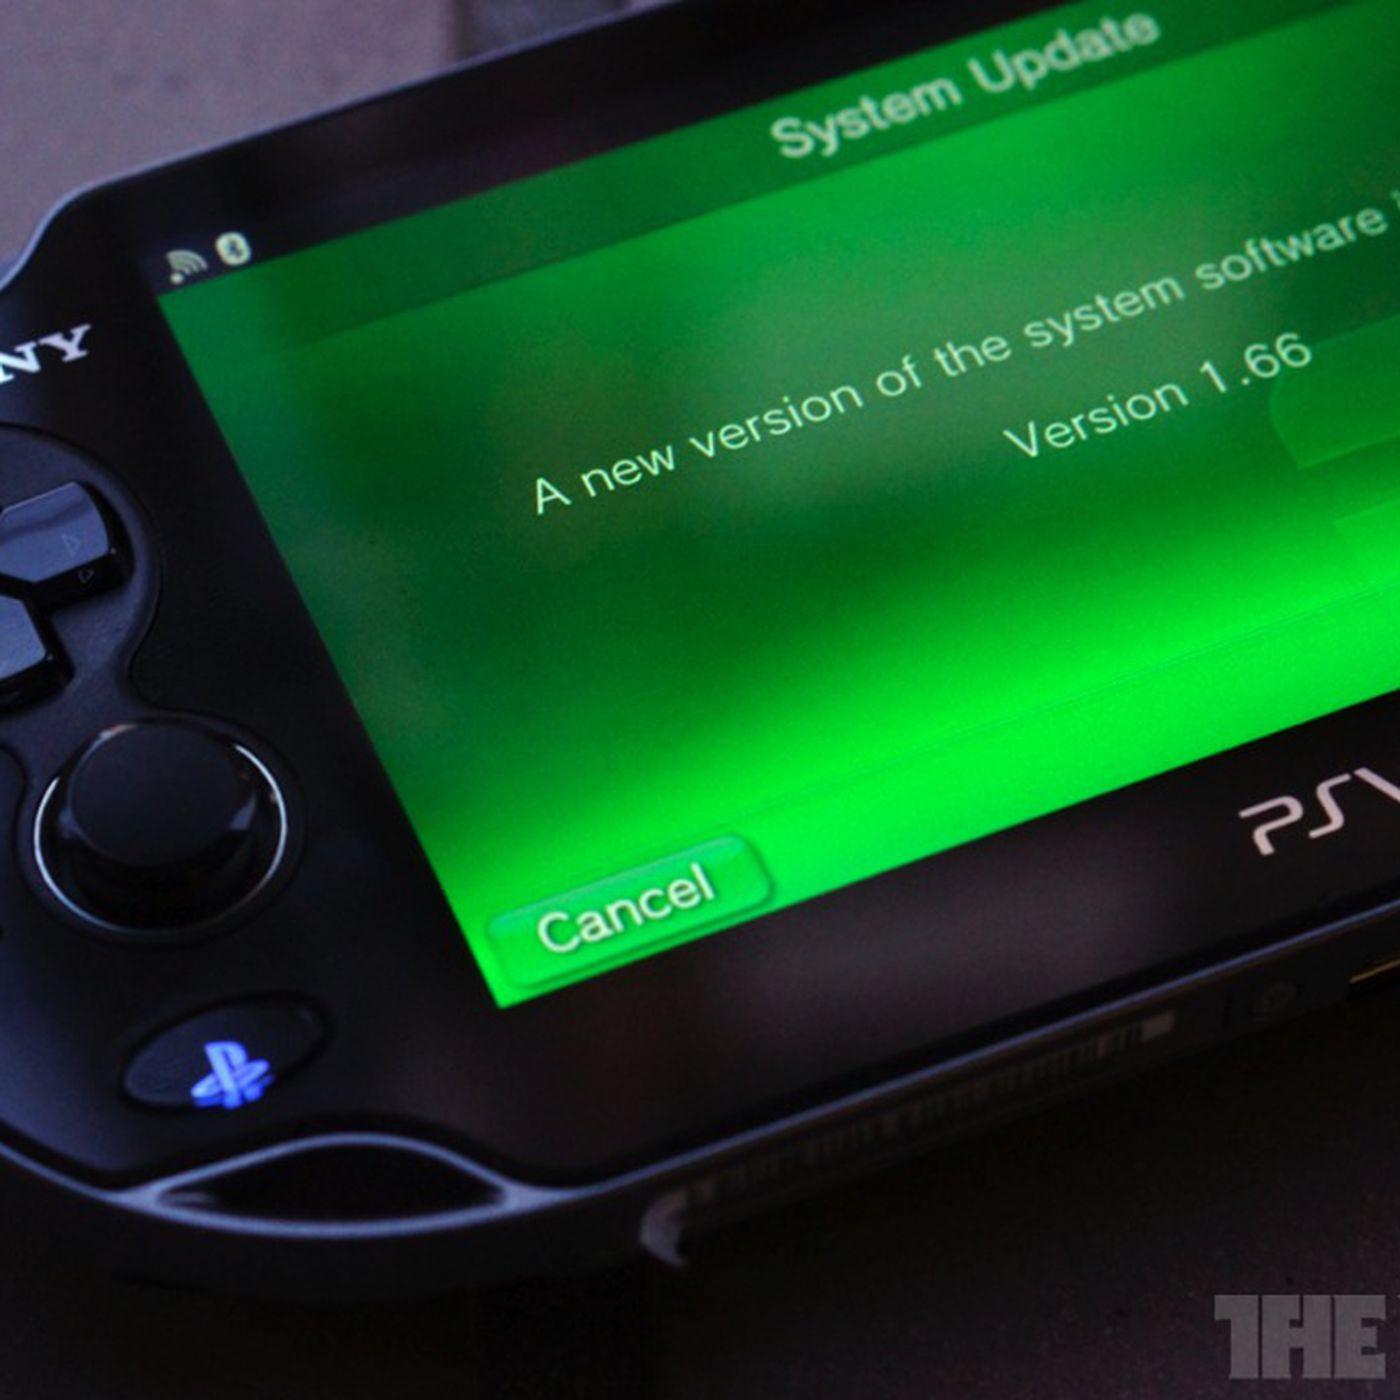 PS Vita firmware version 1 66 available now - The Verge